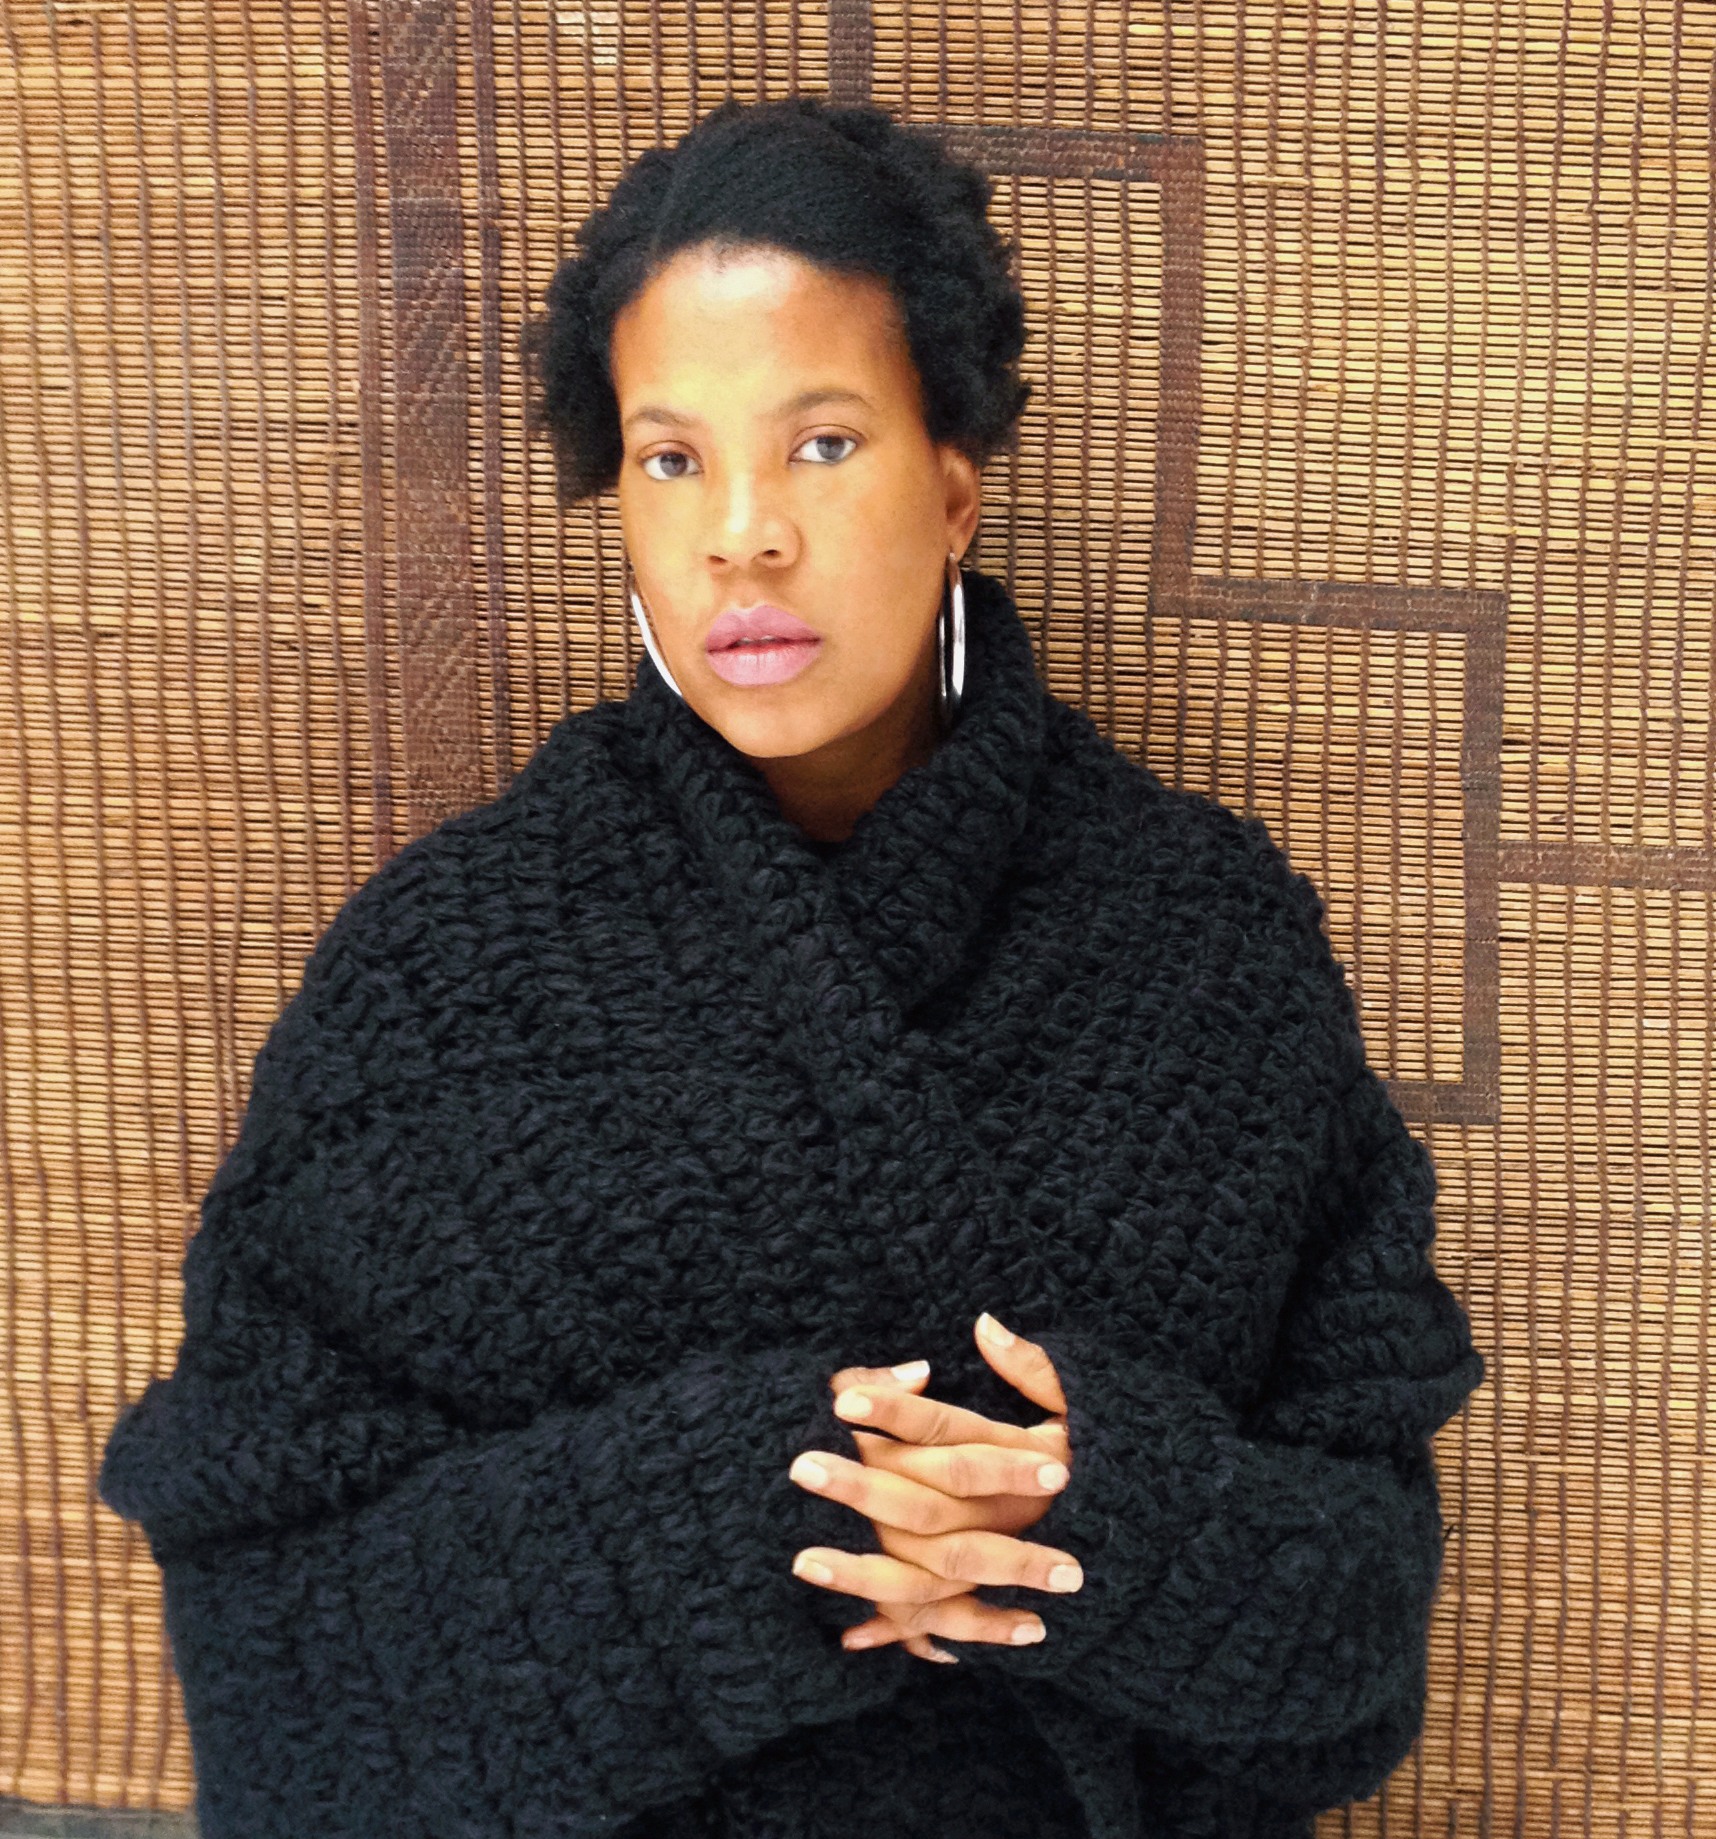 Xaviera Simmons, Distinguished Performing Artist Award recipient